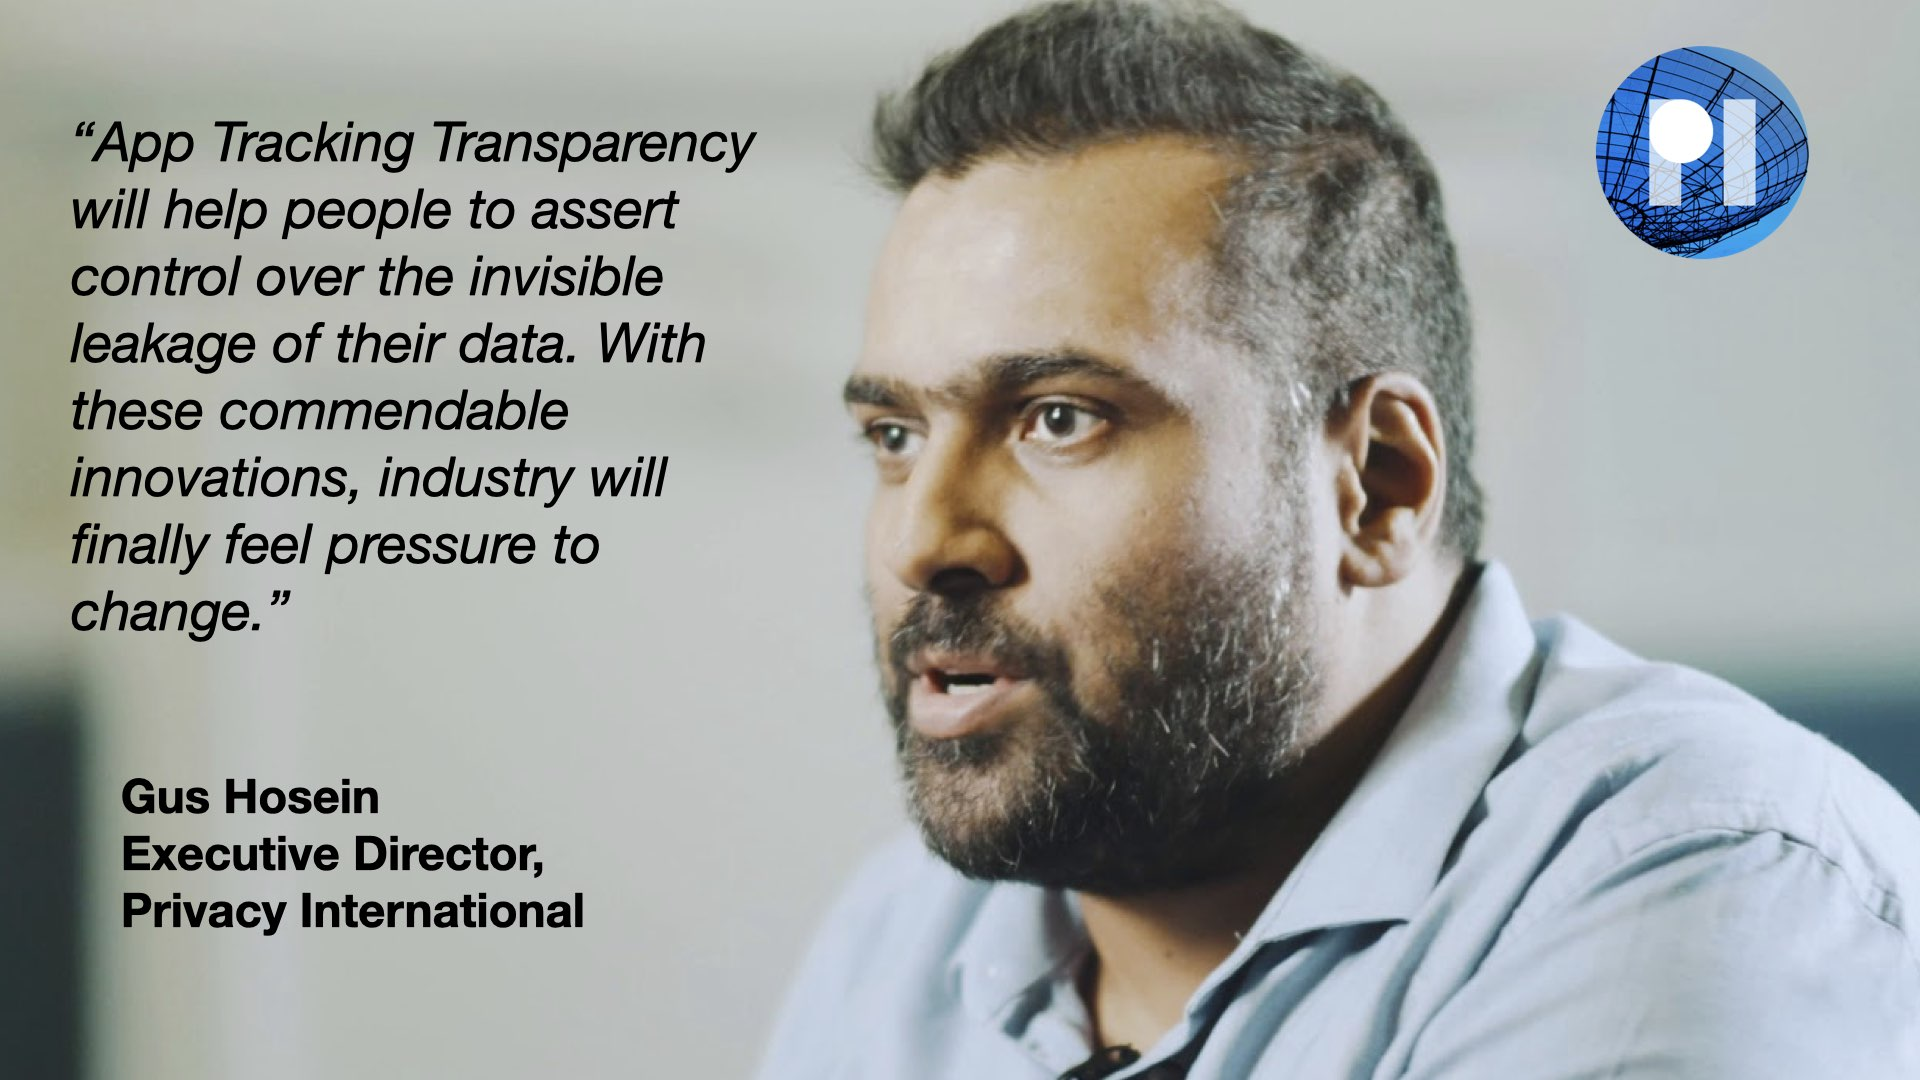 """App Tracking Transparency will help people to assert control over the invisible leakage of their data. With these commendable innovations, industry will finally feel pressure to change."" Gus Hosein"